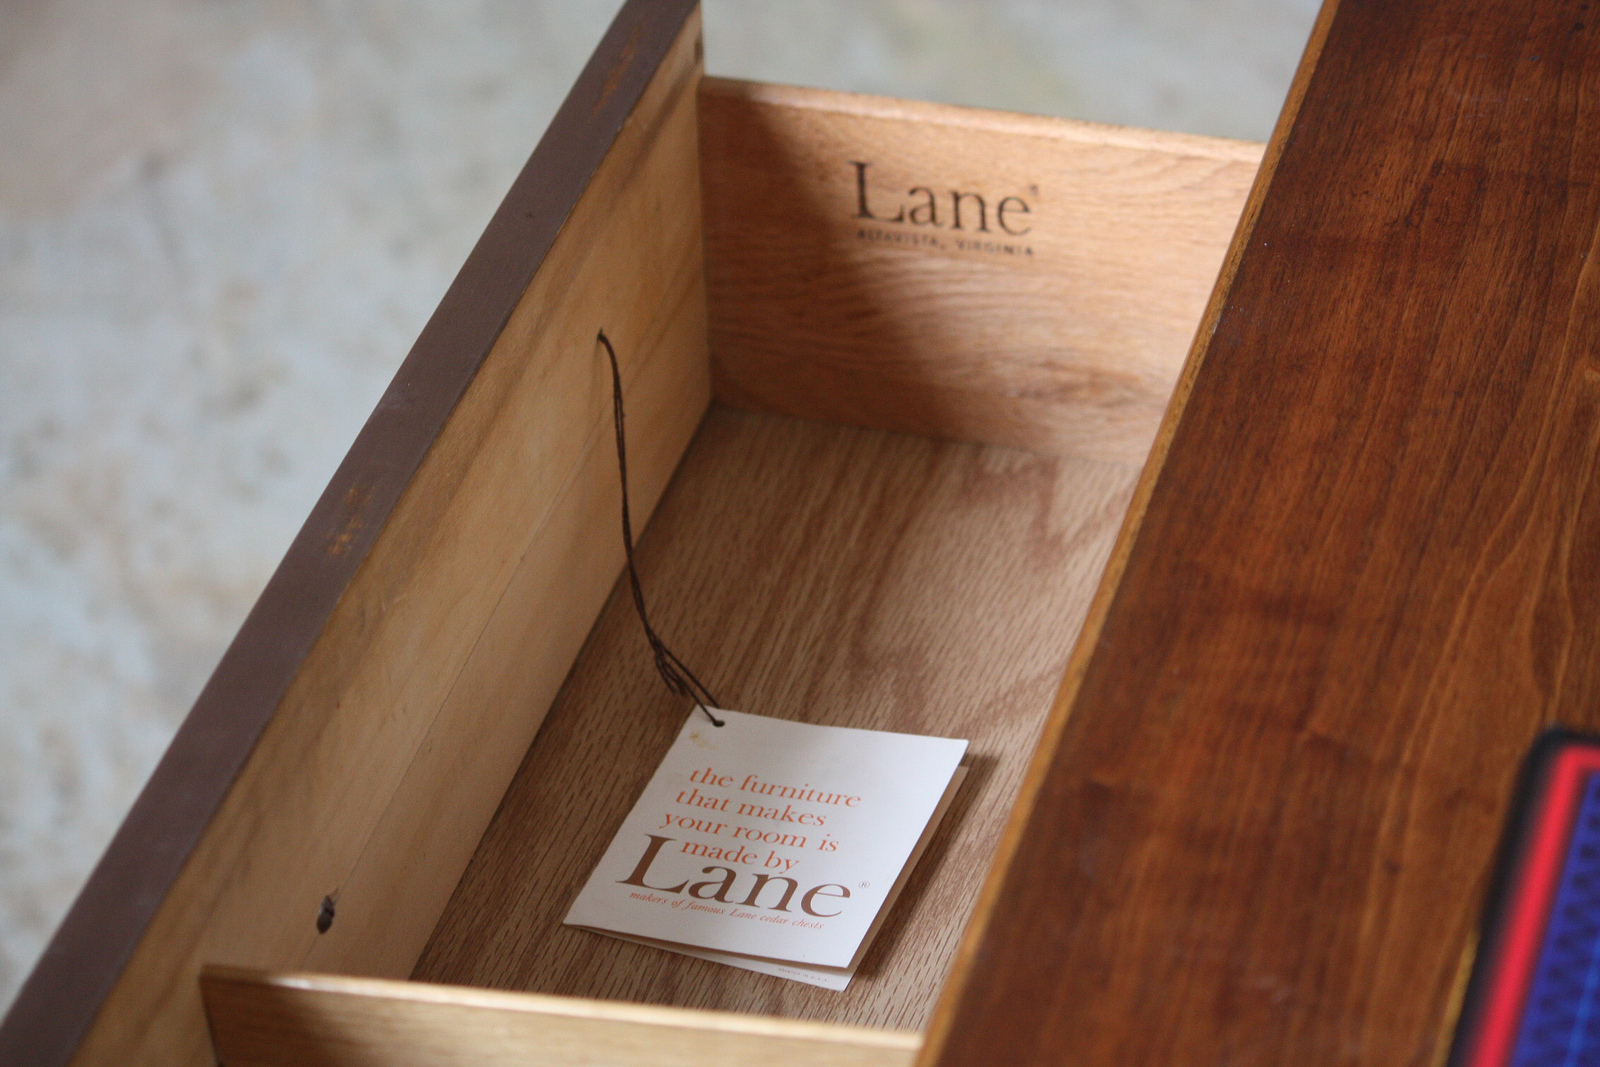 Lane Furniture 1960s Branding Fonts In Use